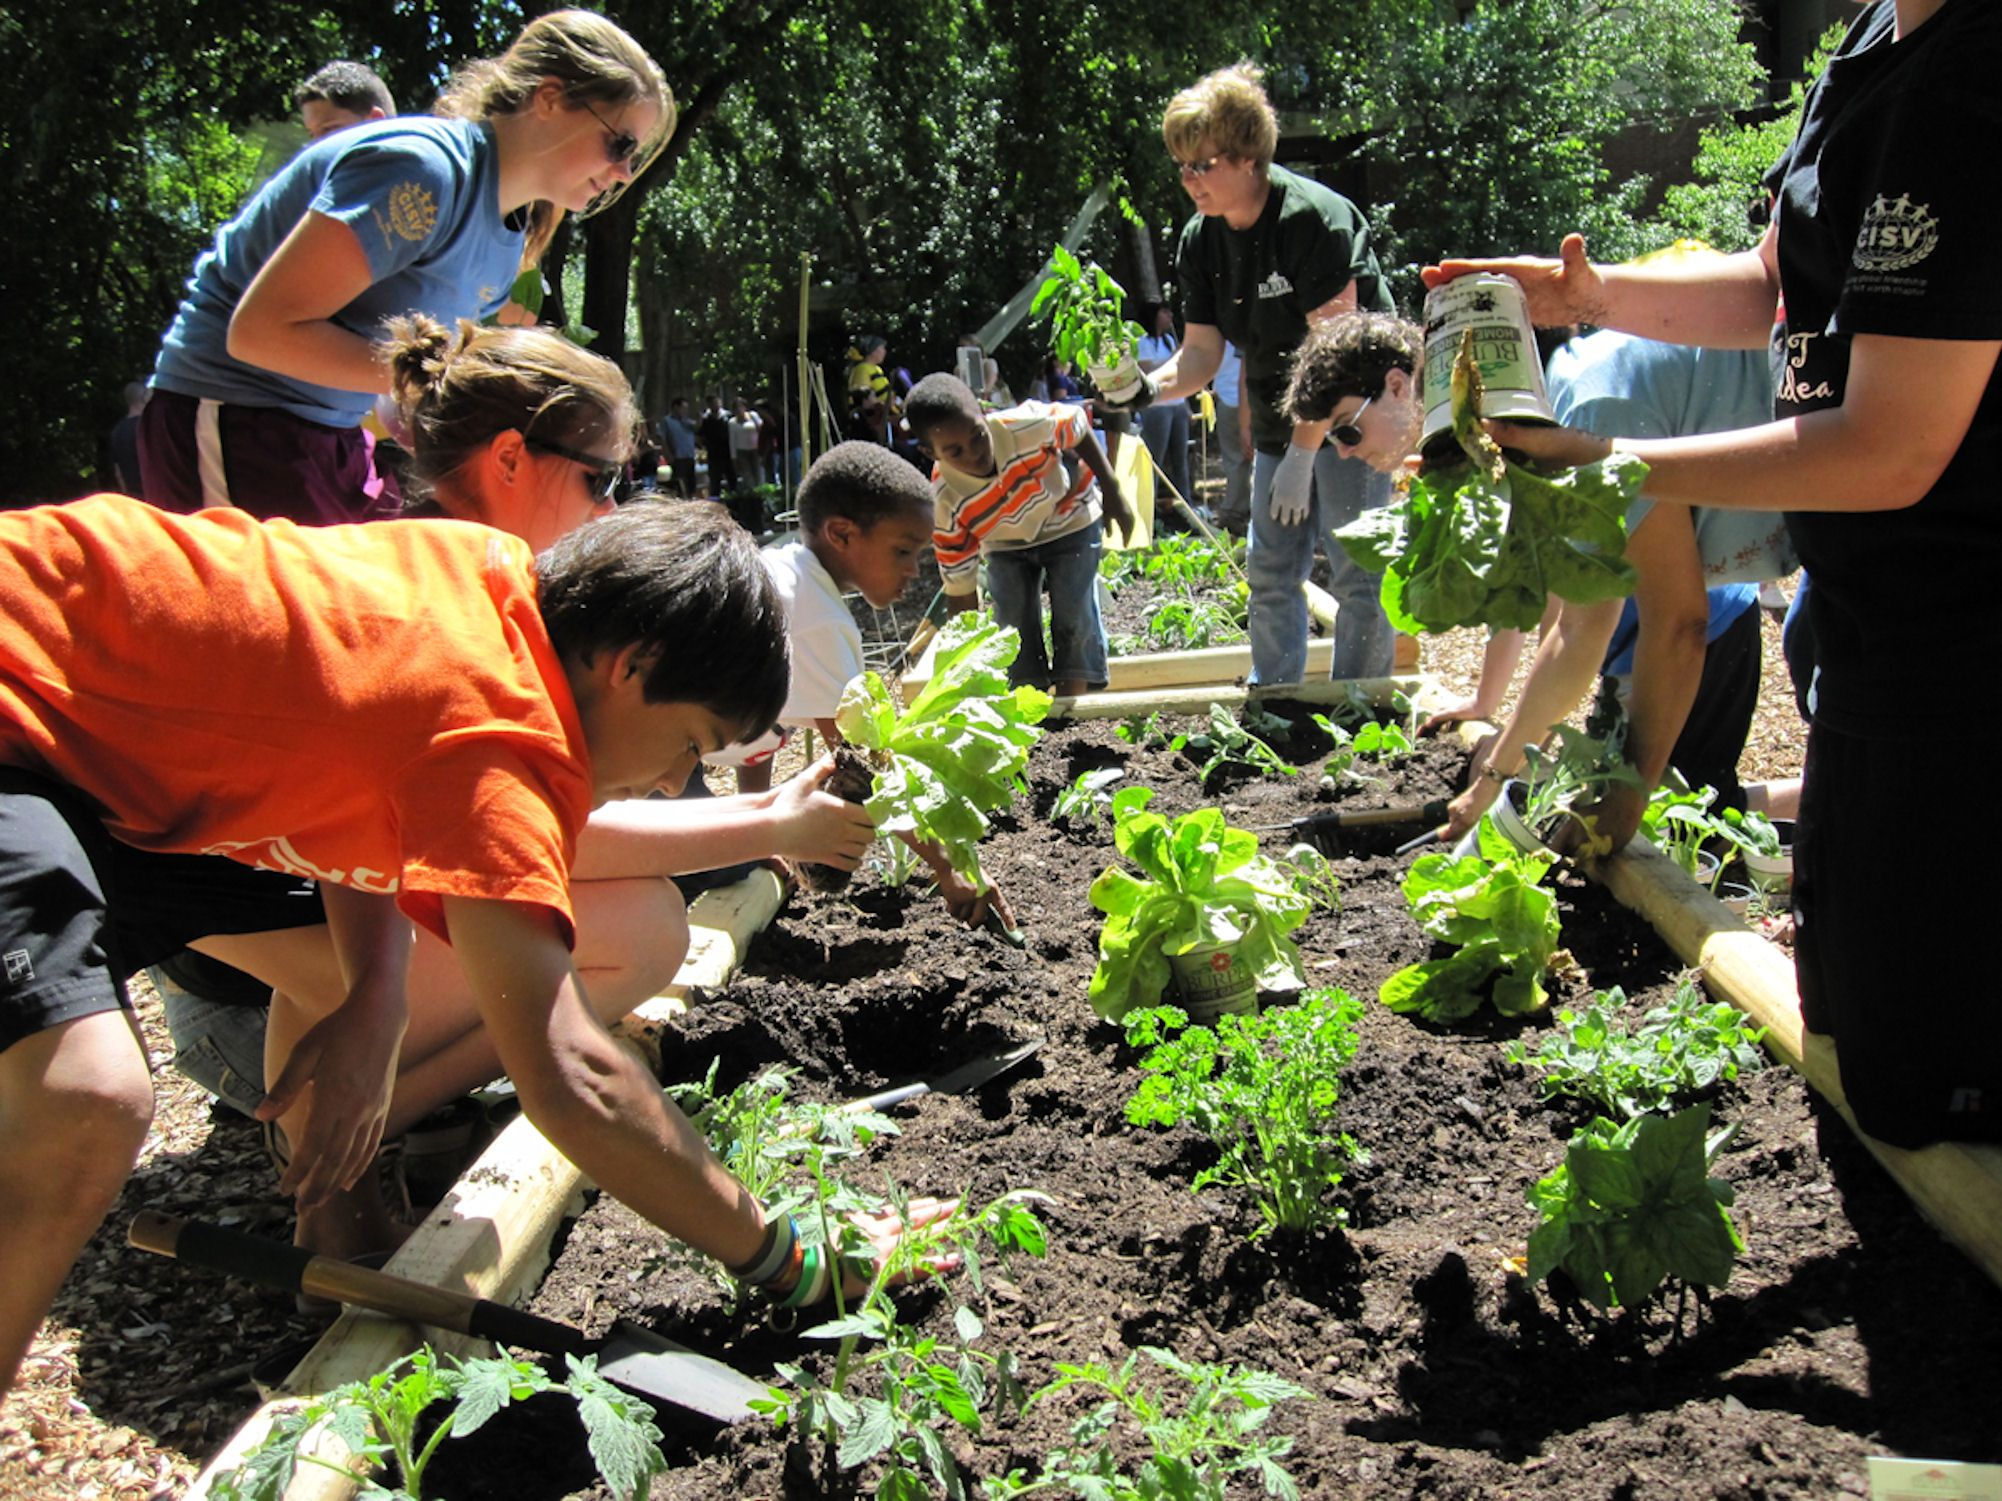 kids in vegetable garden google search - Vegetable Garden Ideas For Kids